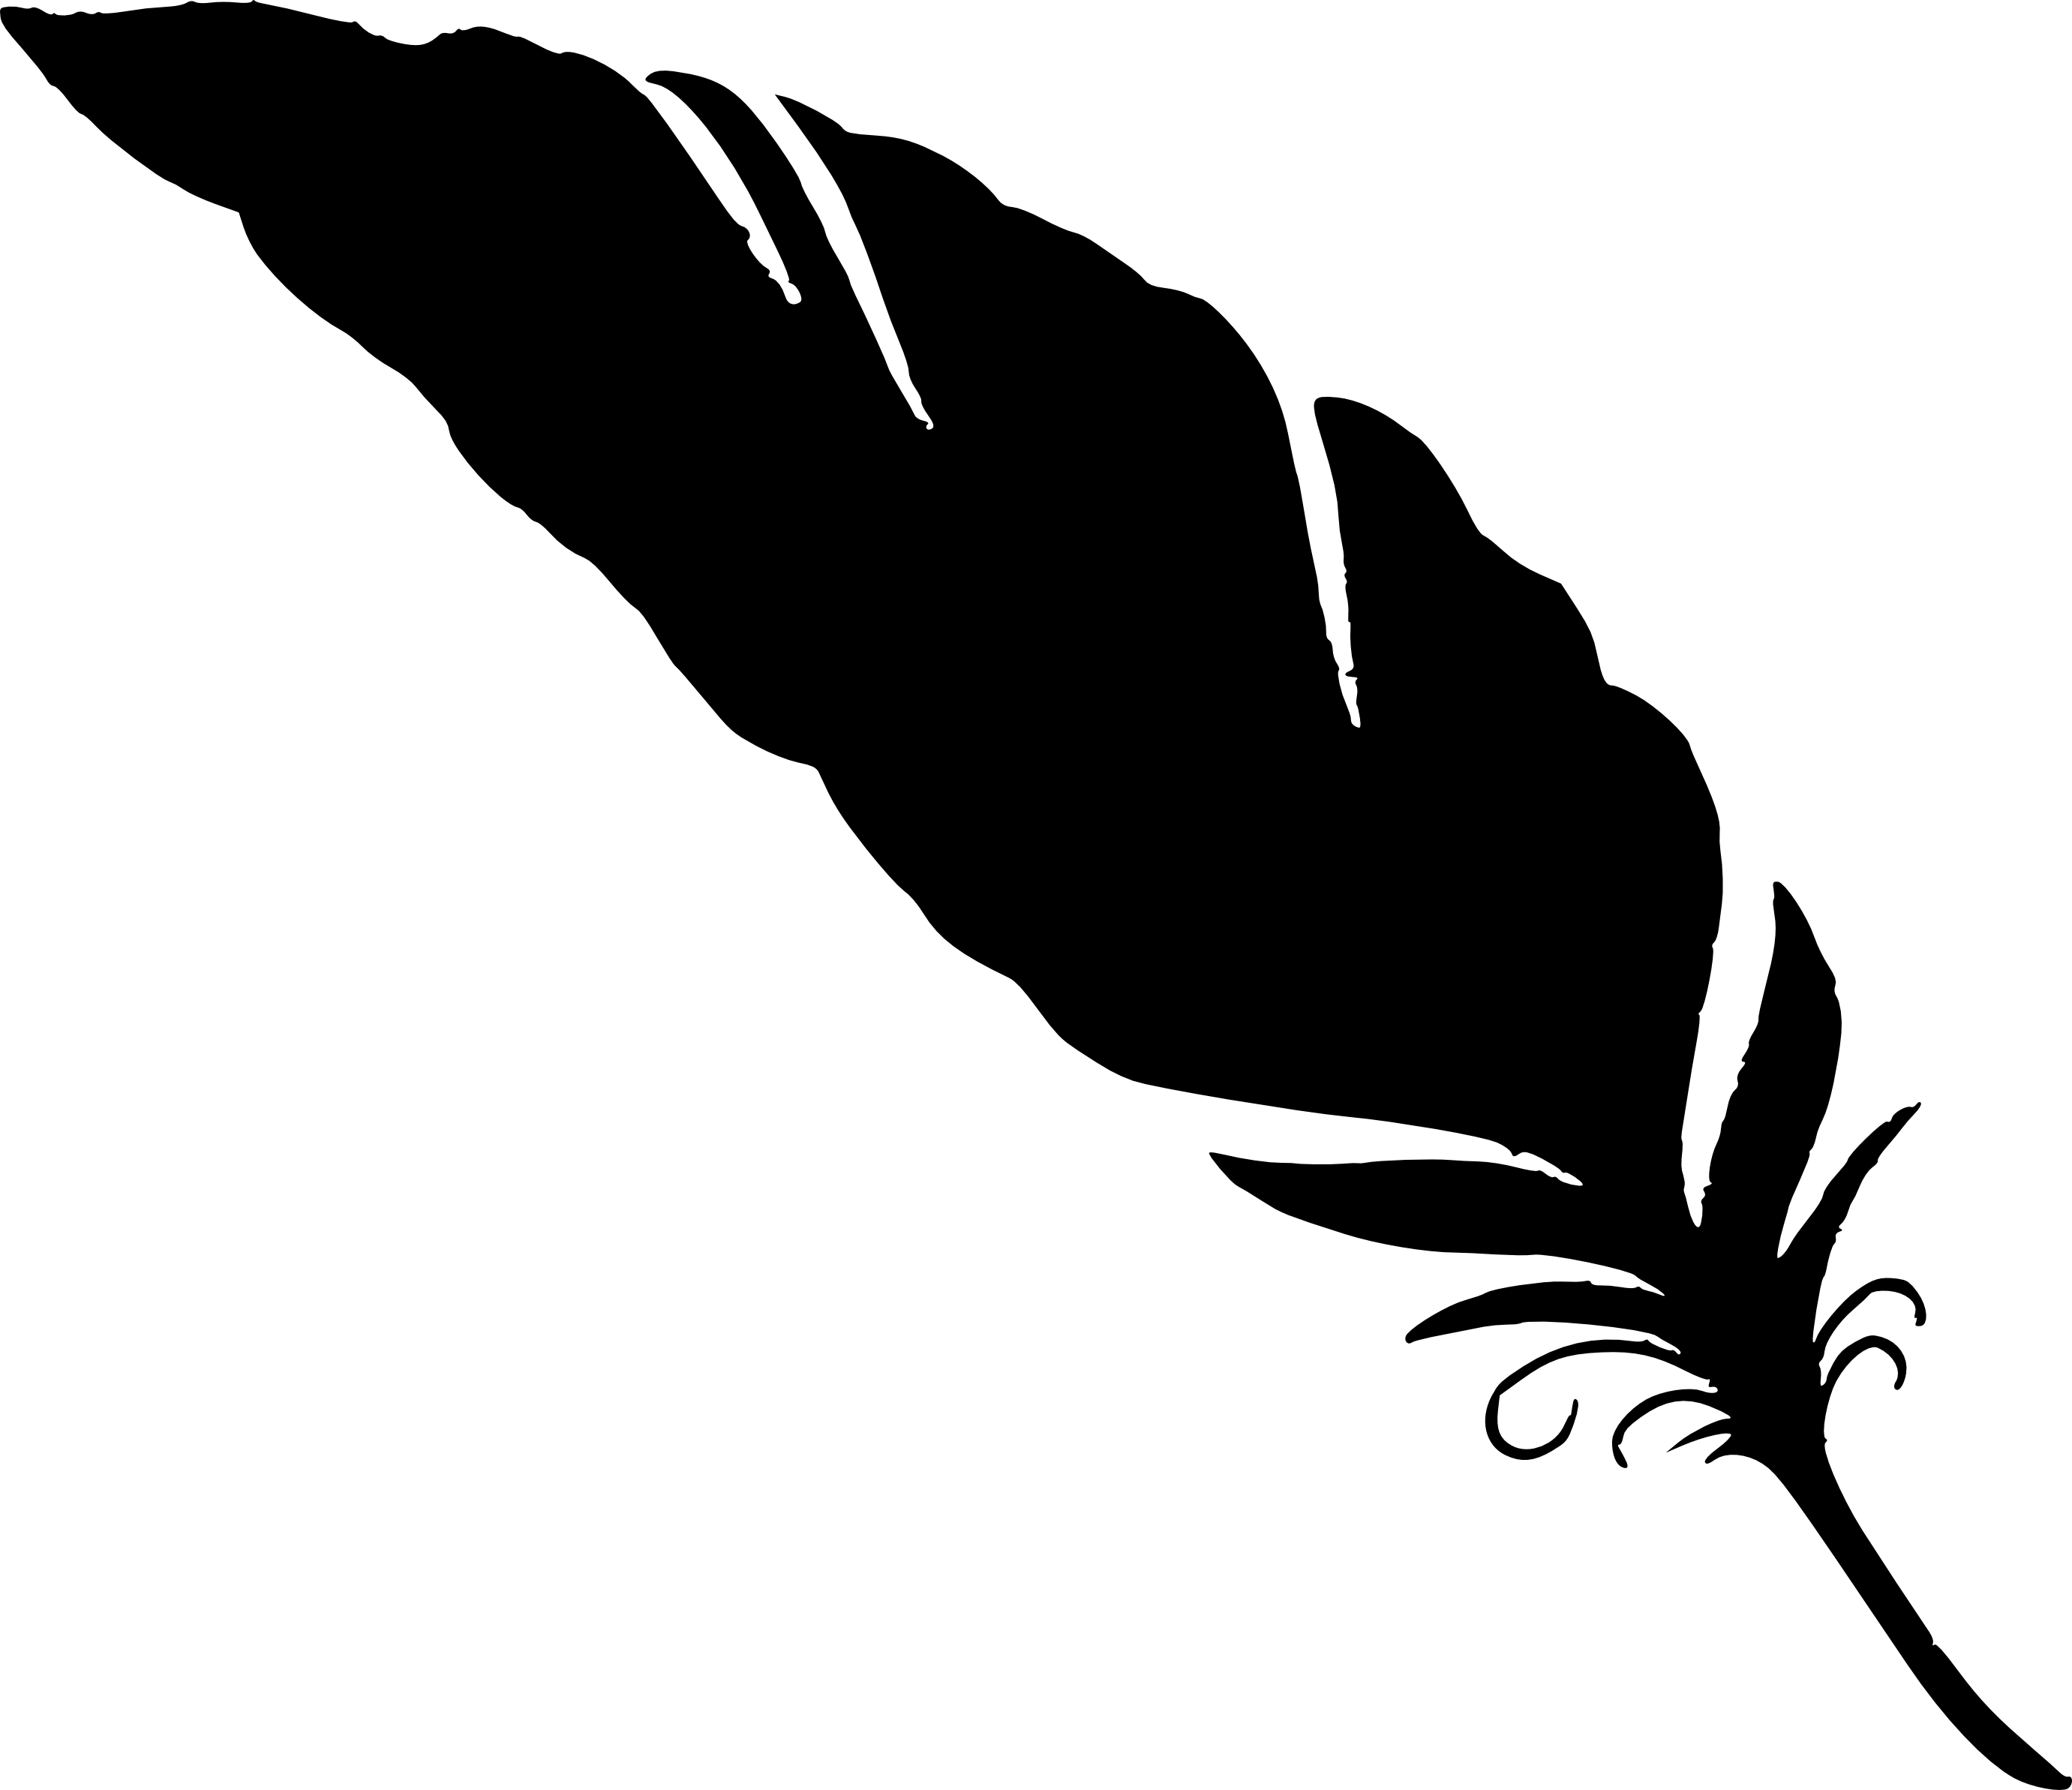 transparent feathers png format